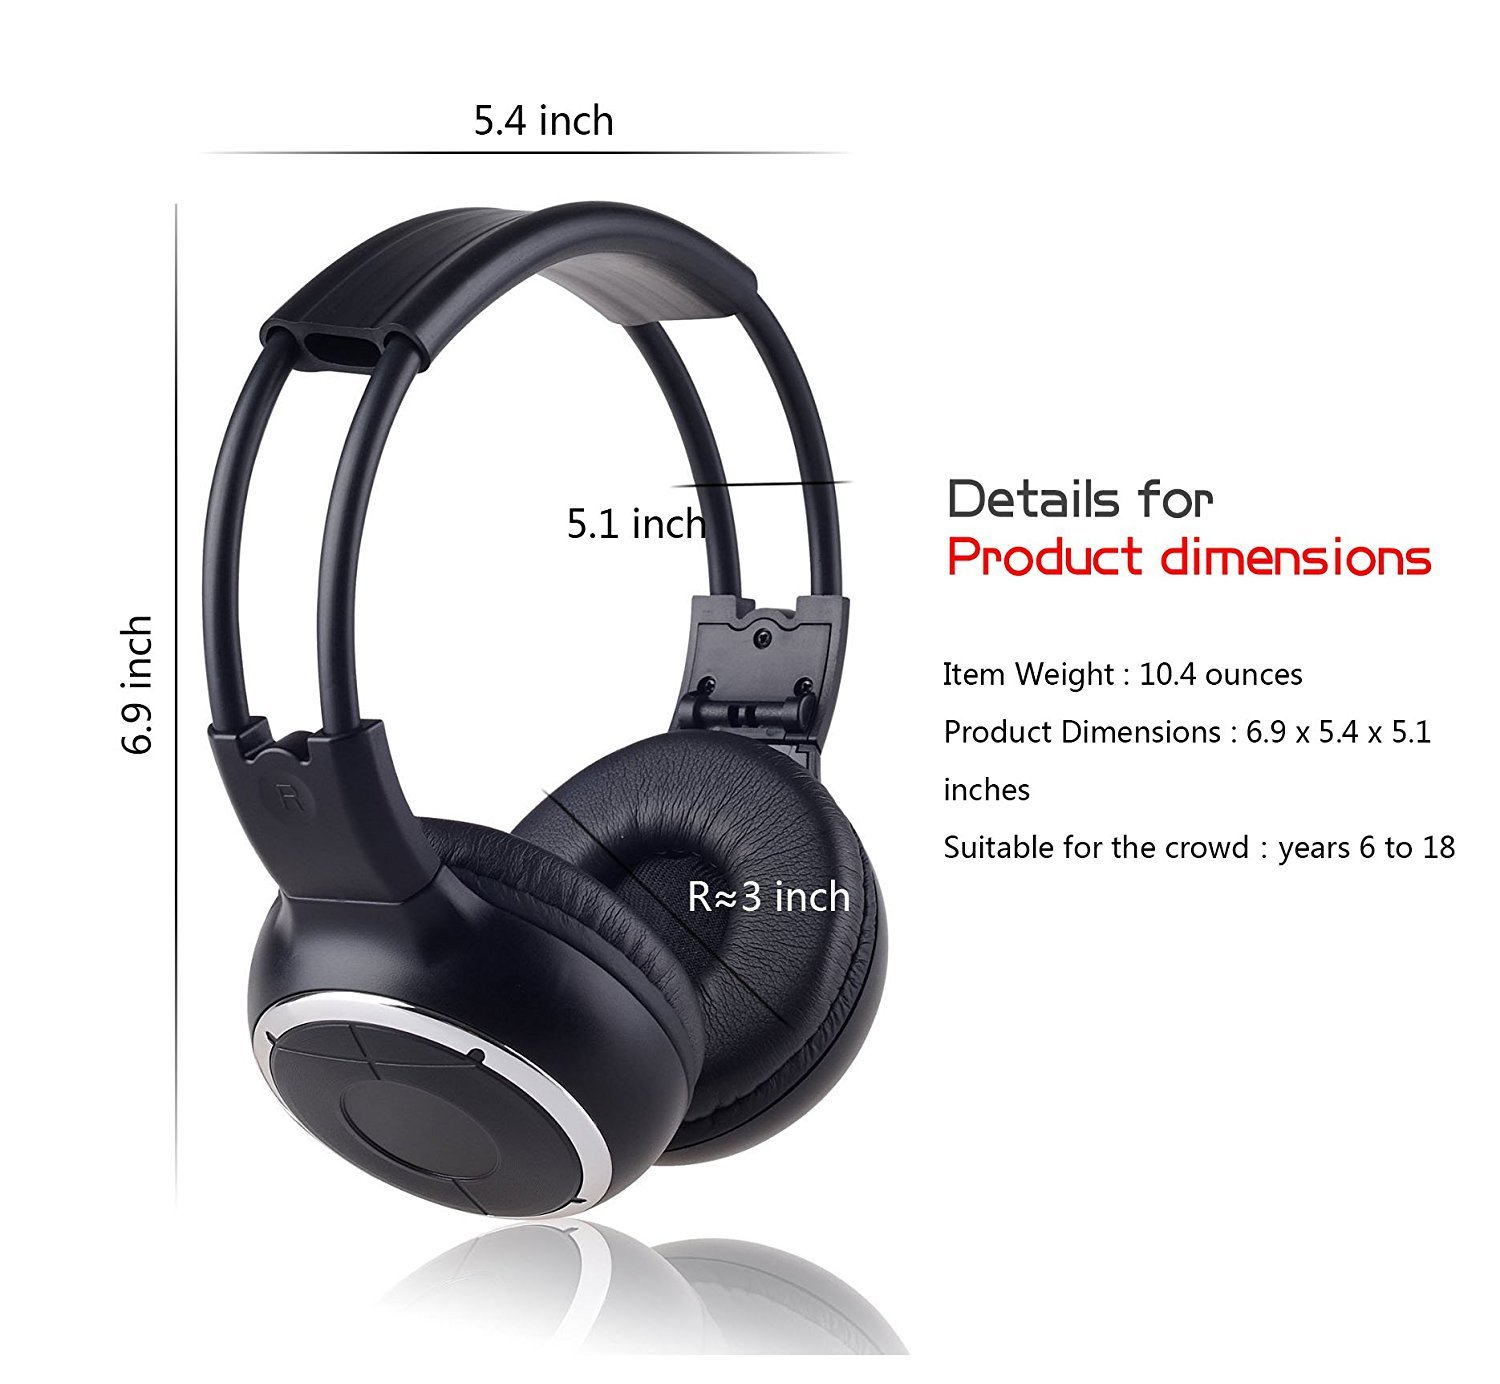 Two Channel Folding Adjustable Universal Rear Entertainment System Infrared Headphones for in Car TV Video Audio Listening SainStore Inc LeaningTech 2 Pack of IR Wireless Two-Channel Foldable Headphone LTC IR Headphone